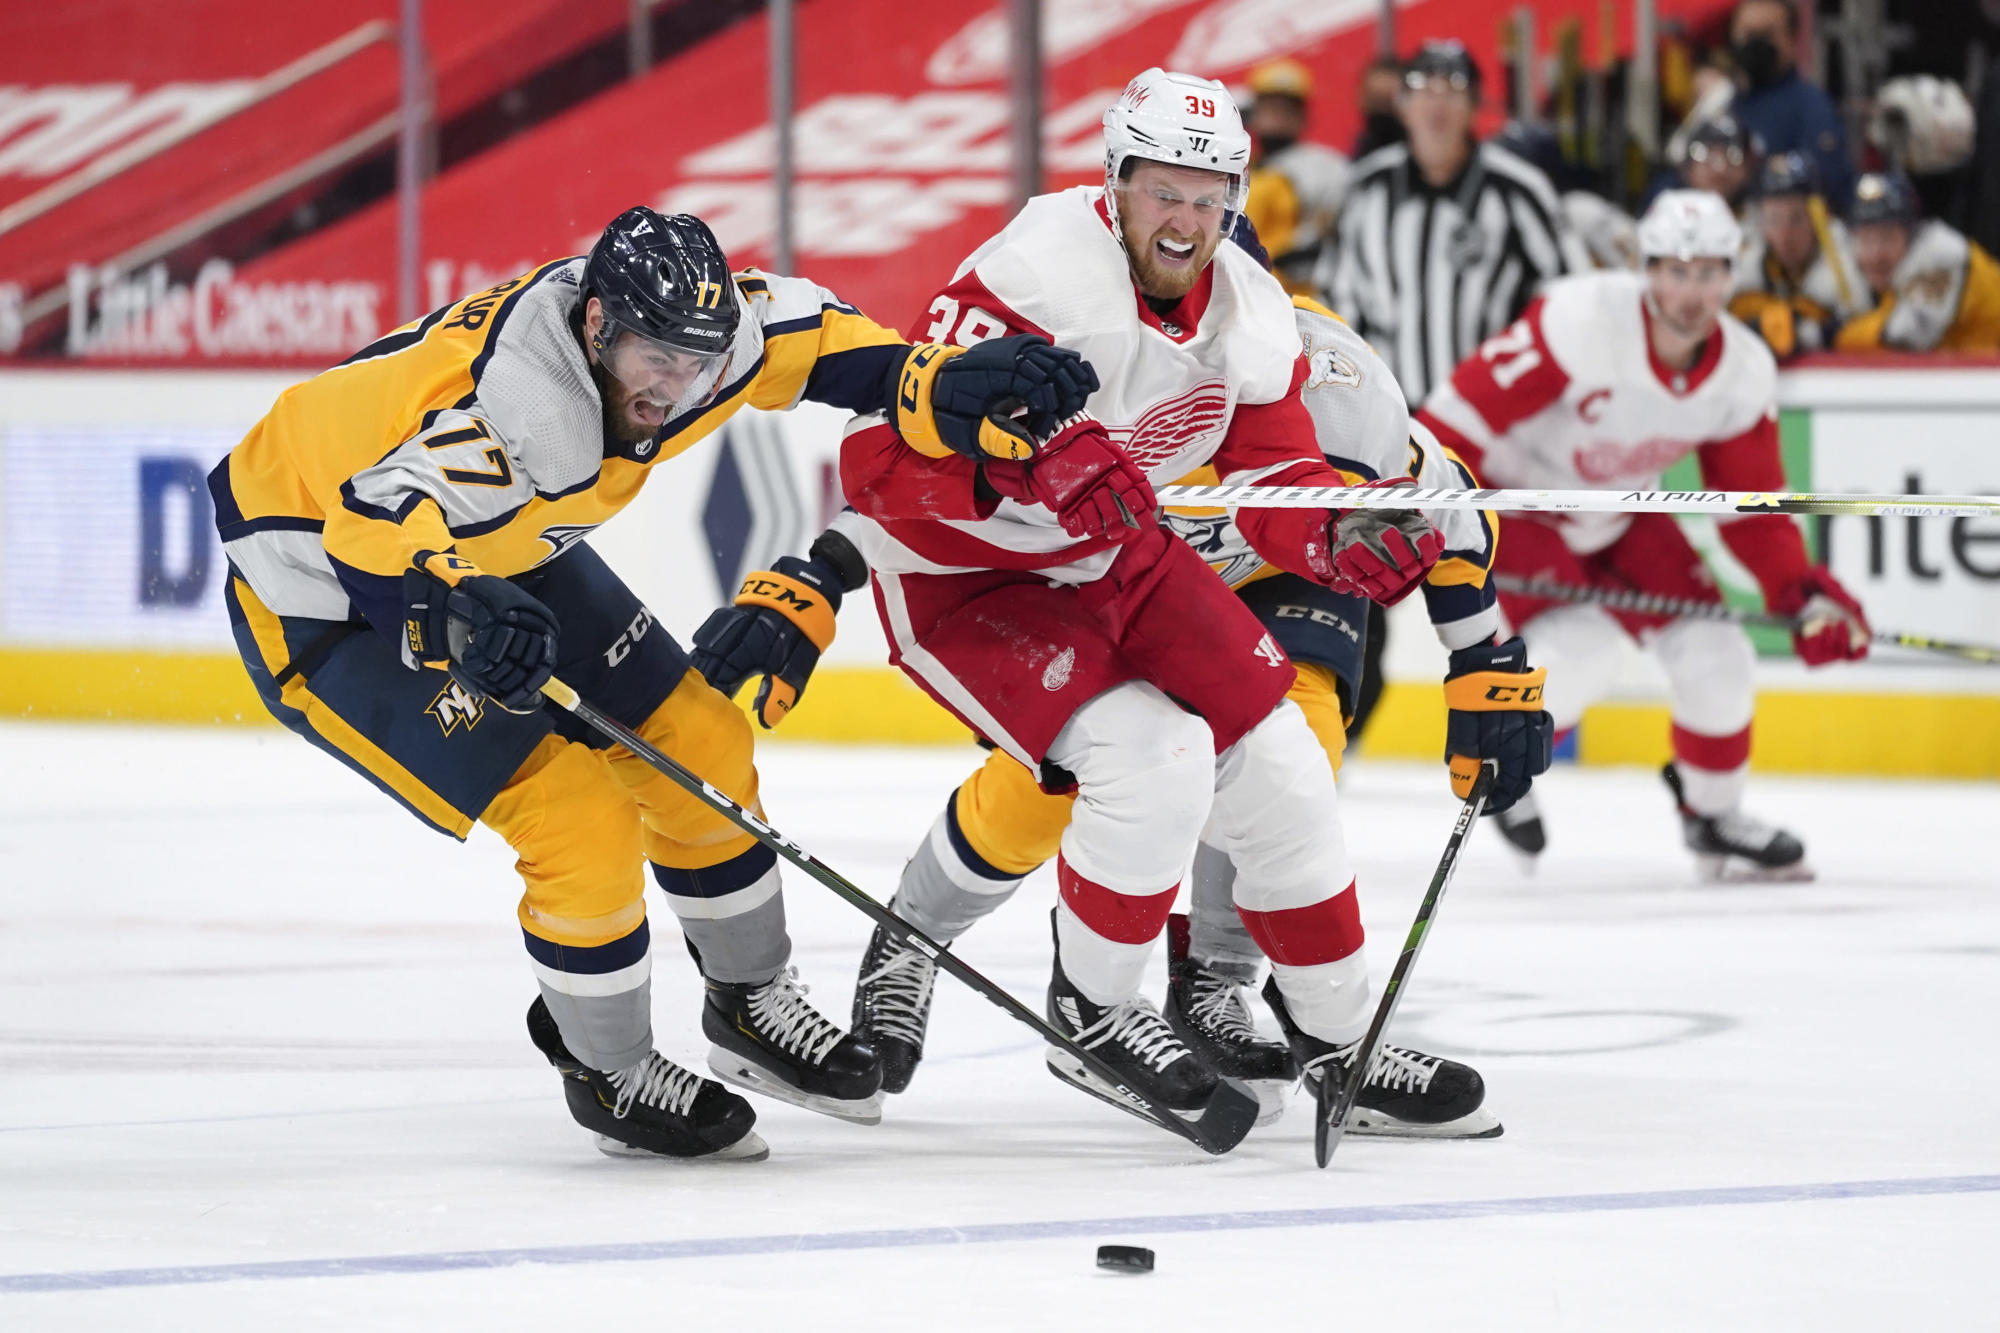 No cap crunch for Capitals, who land Mantha at deadline